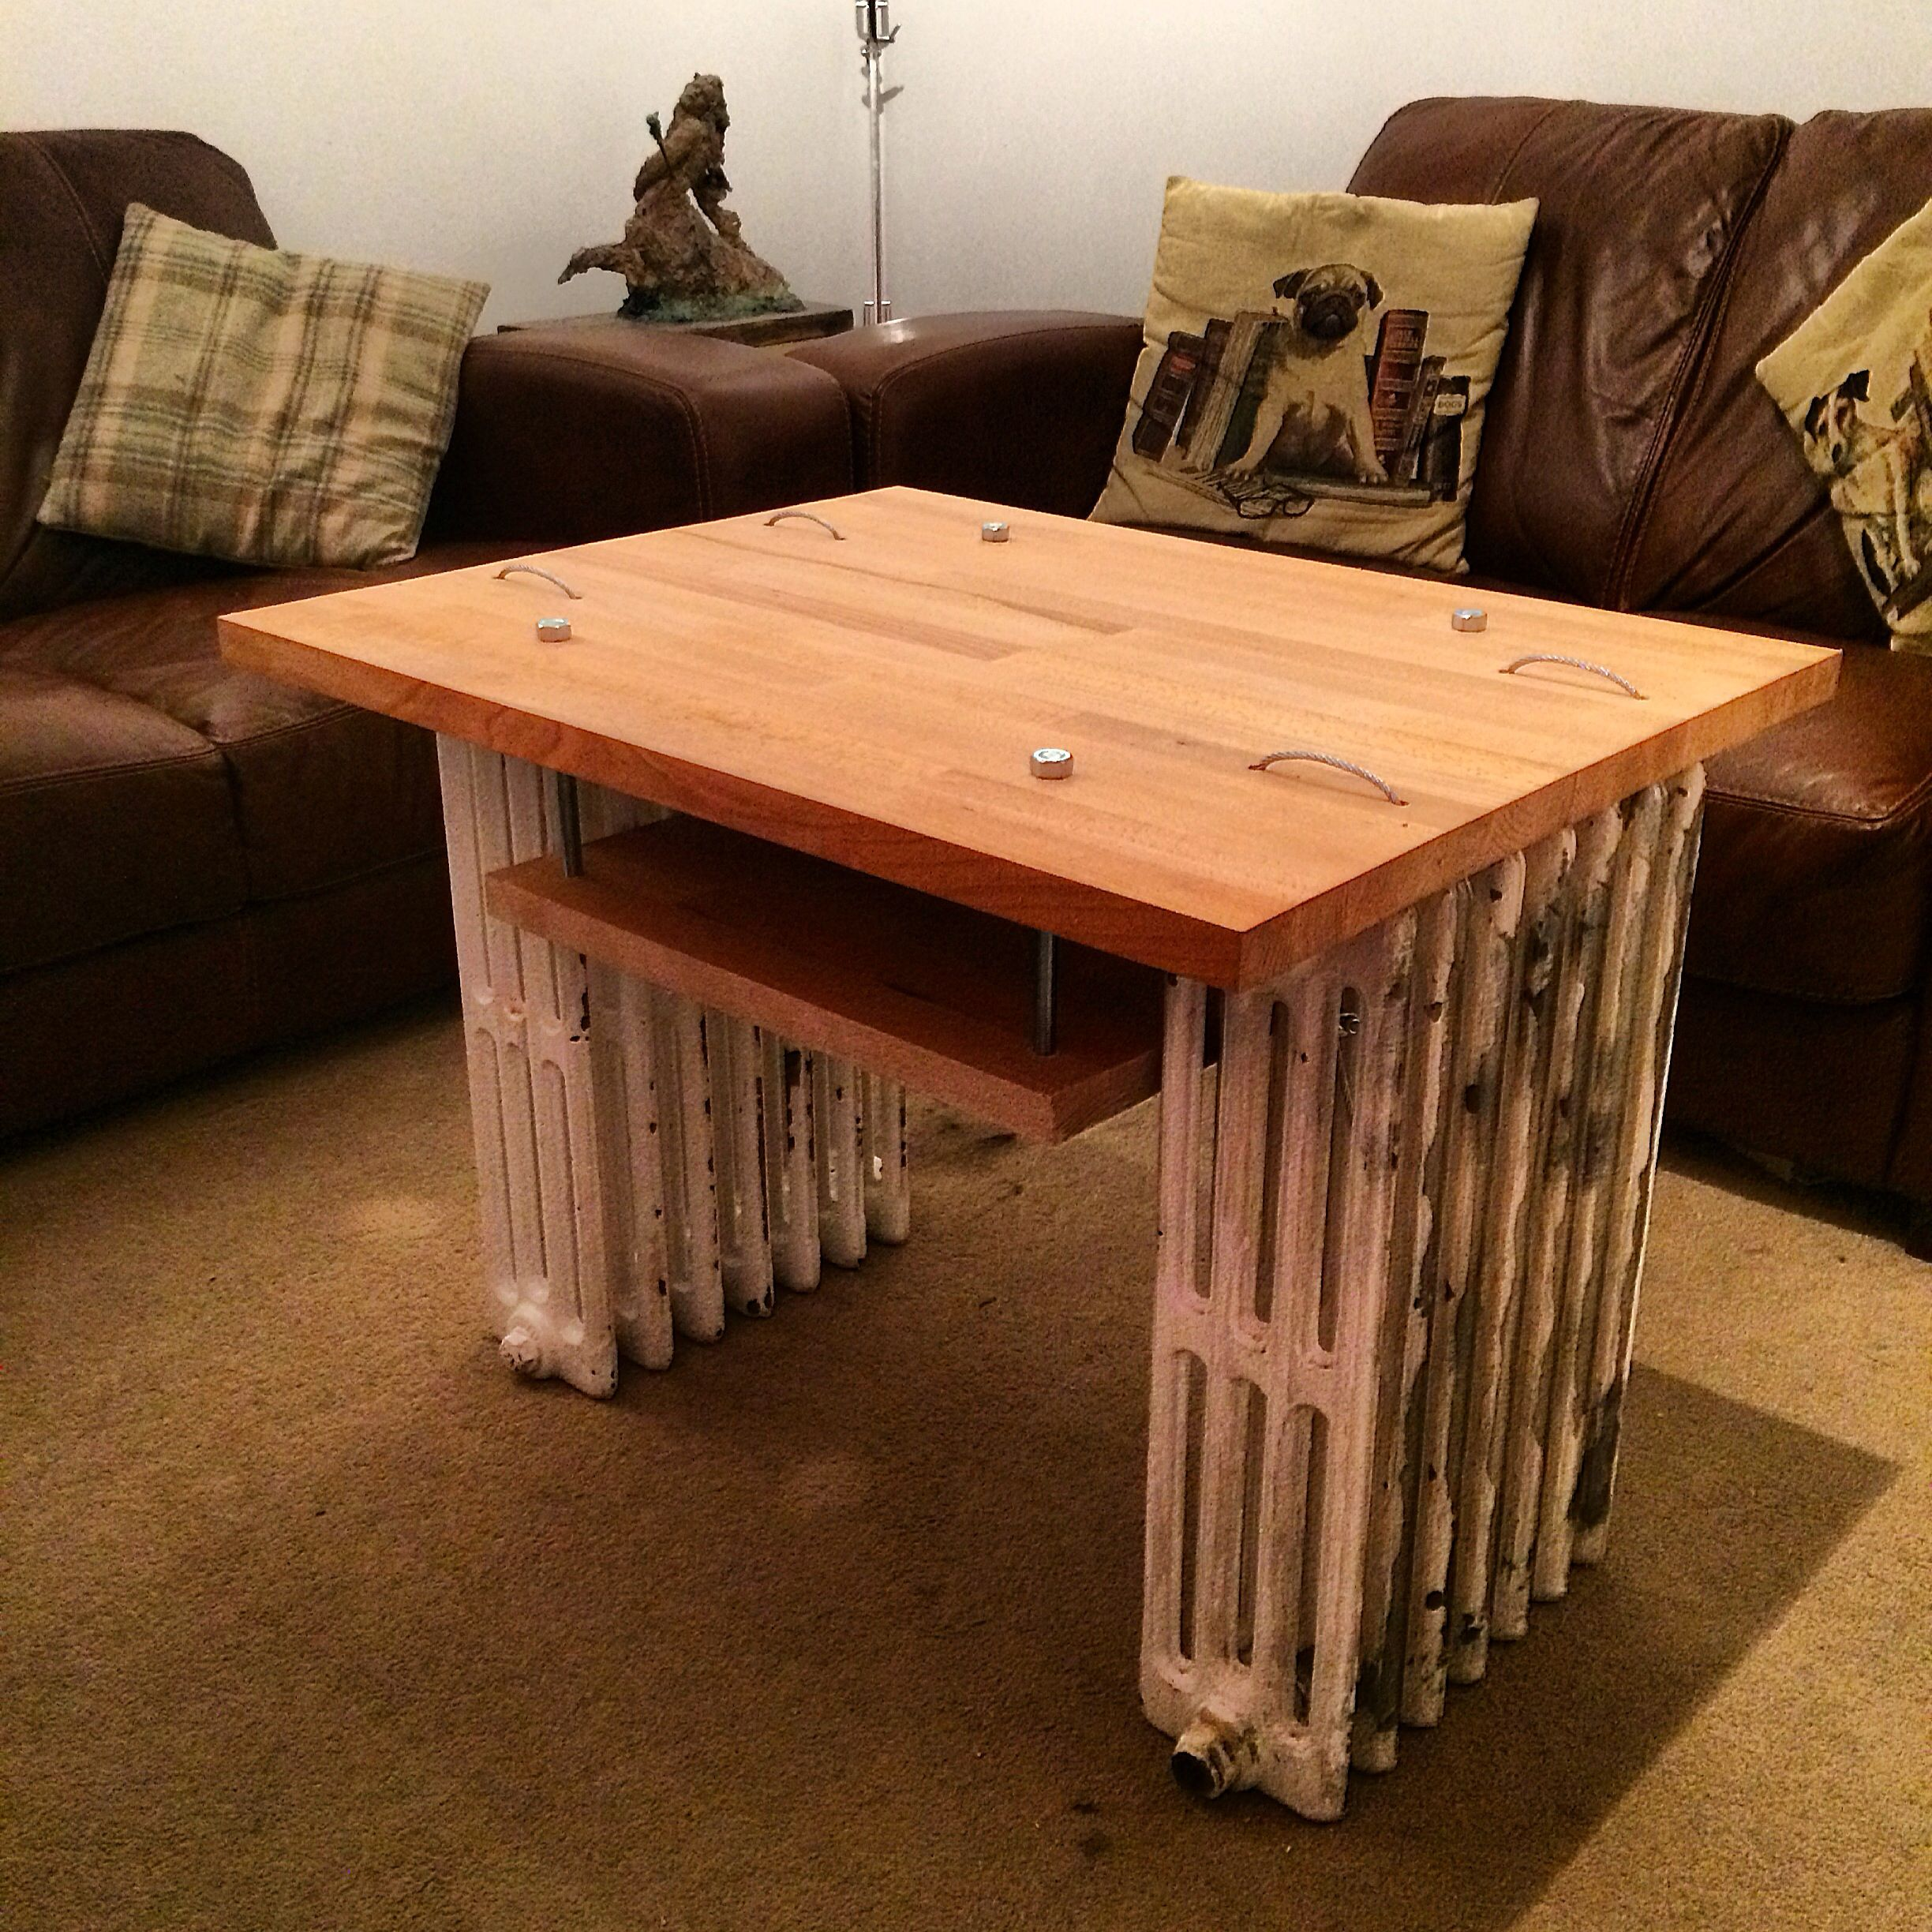 Upcycled coffee table Old cast iron radiators wire rope bzp